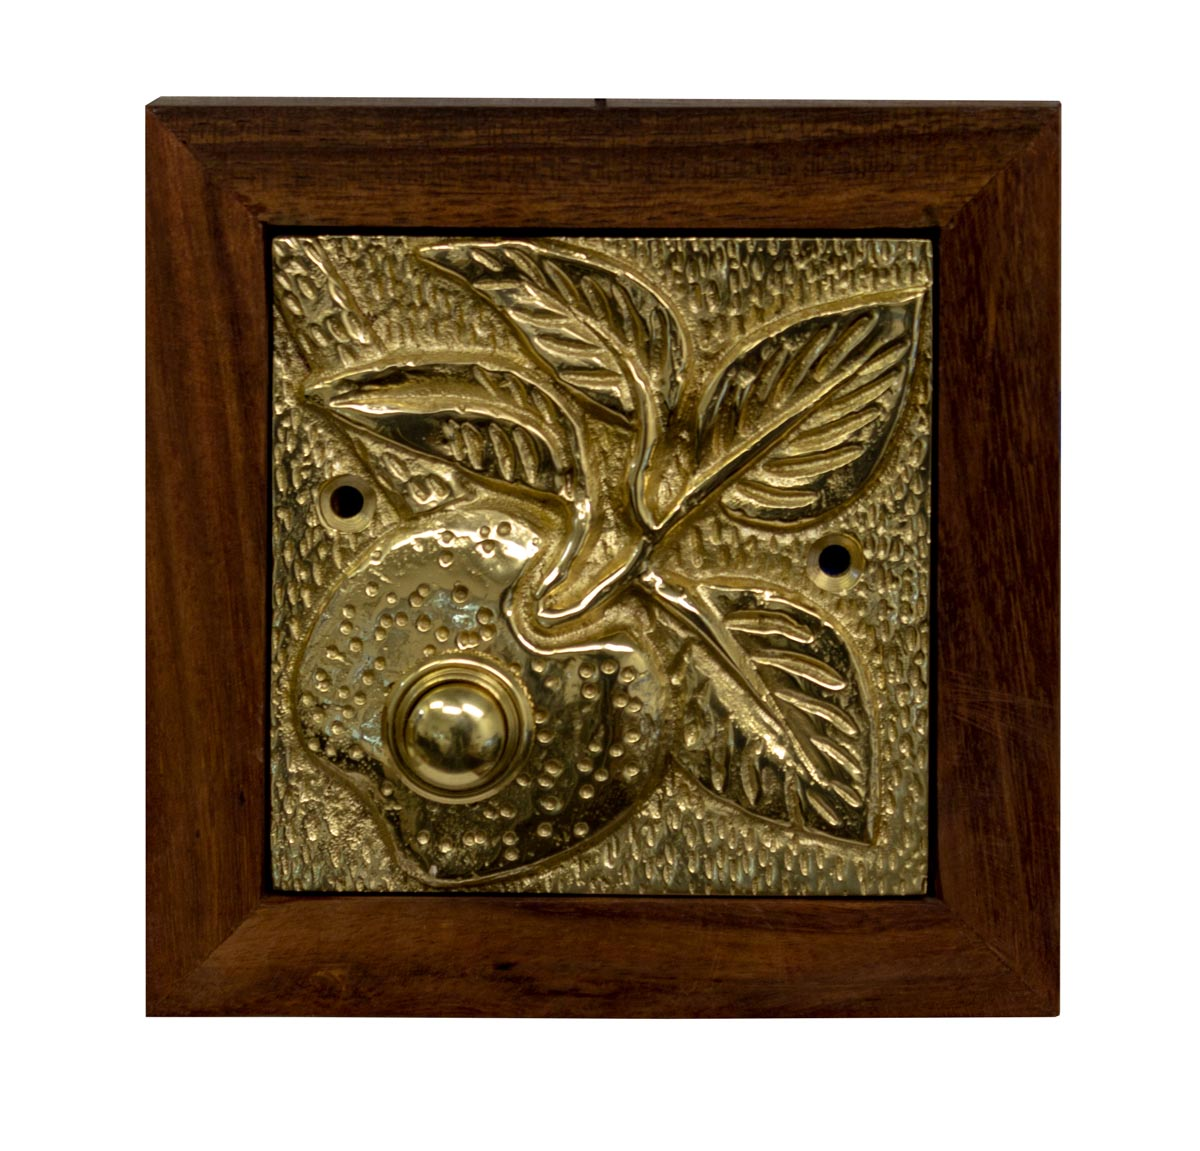 Large Decorative Square Doorbell